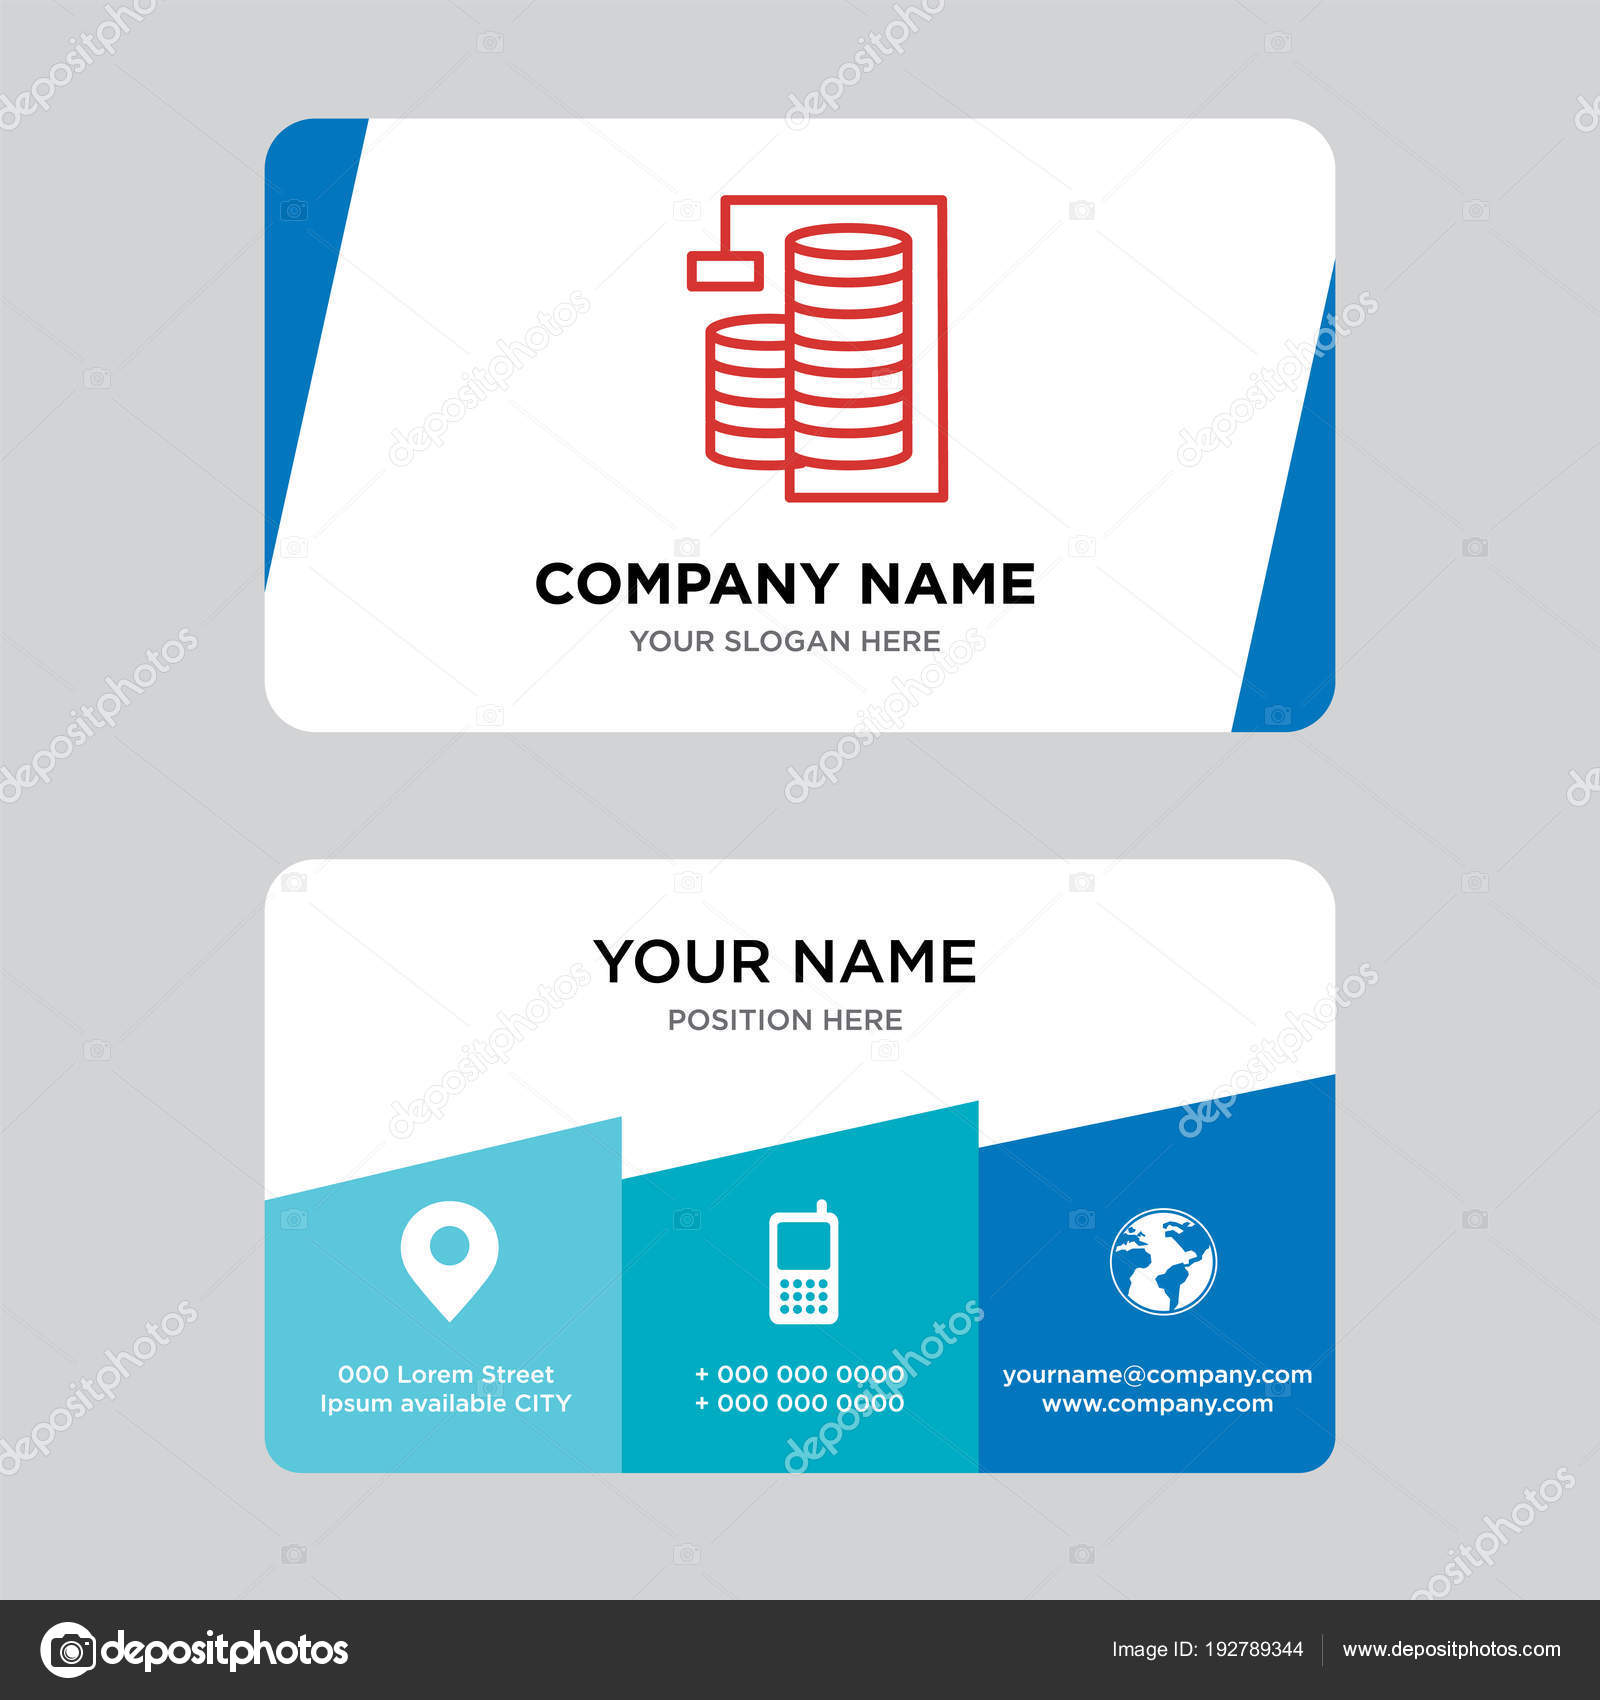 Database analysis business card design template stock vector database analysis business card design template stock vector reheart Images